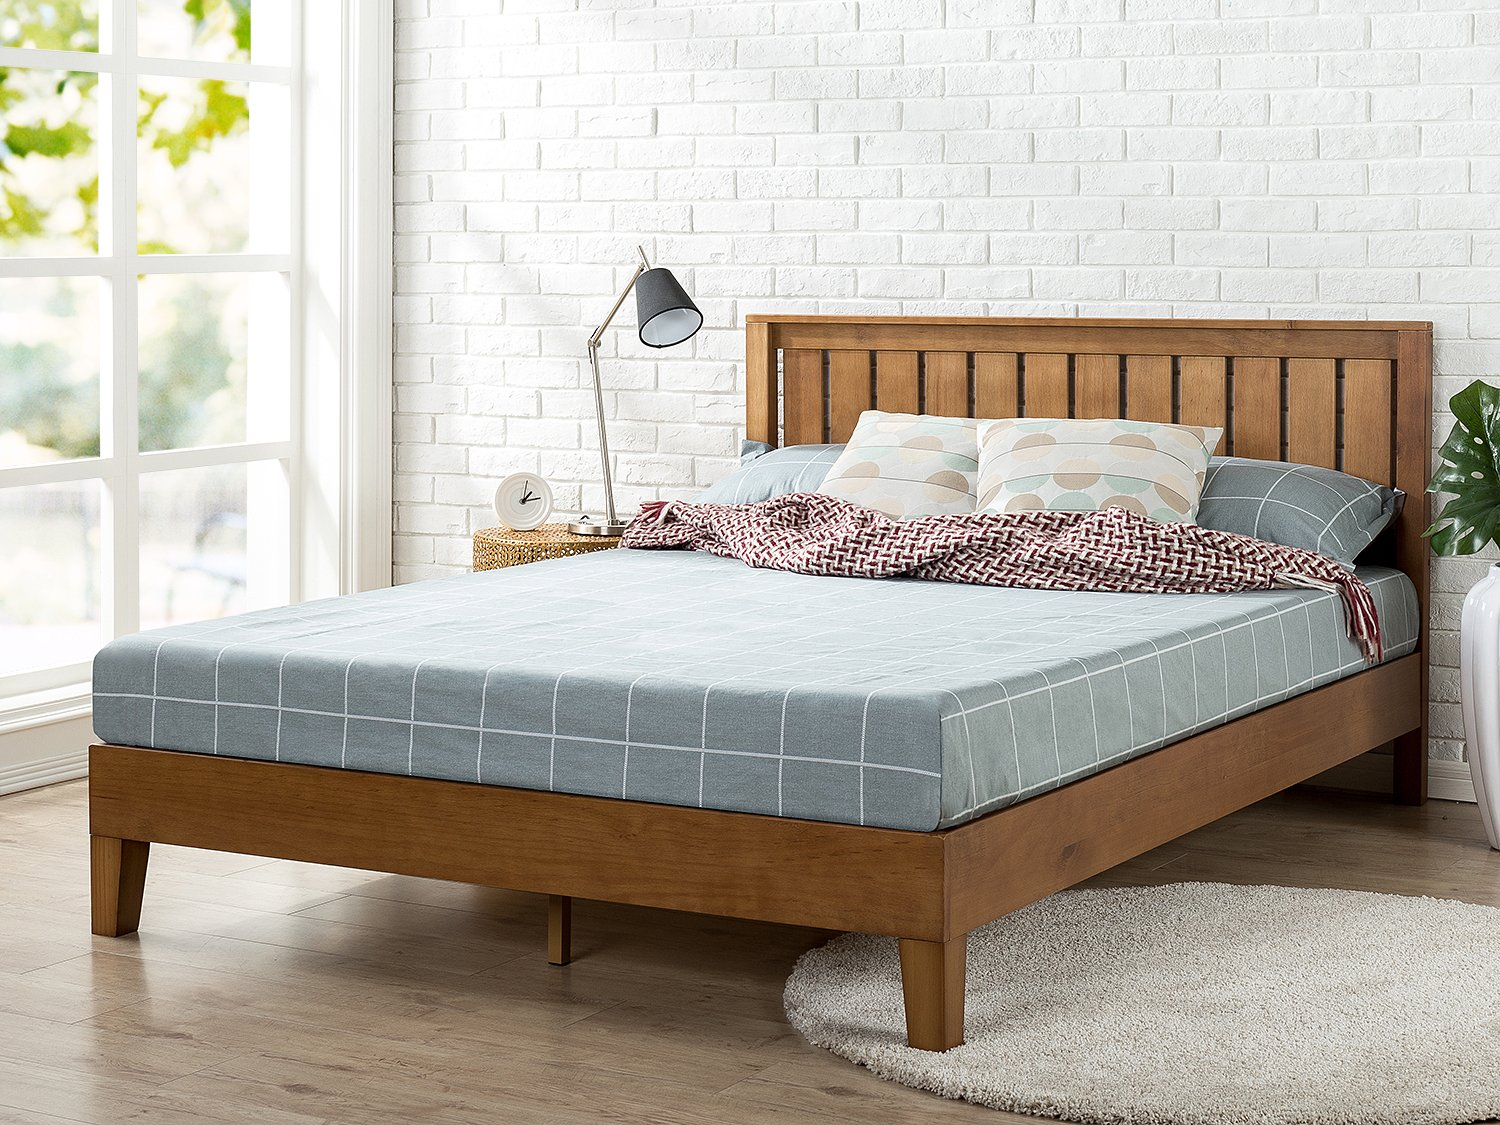 the latest 5686a 525f0 Zinus Alexis 12 Inch Deluxe Wood Platform Bed with Headboard / No Box  Spring Needed / Wood Slat Support / Rustic Pine Finish, Queen